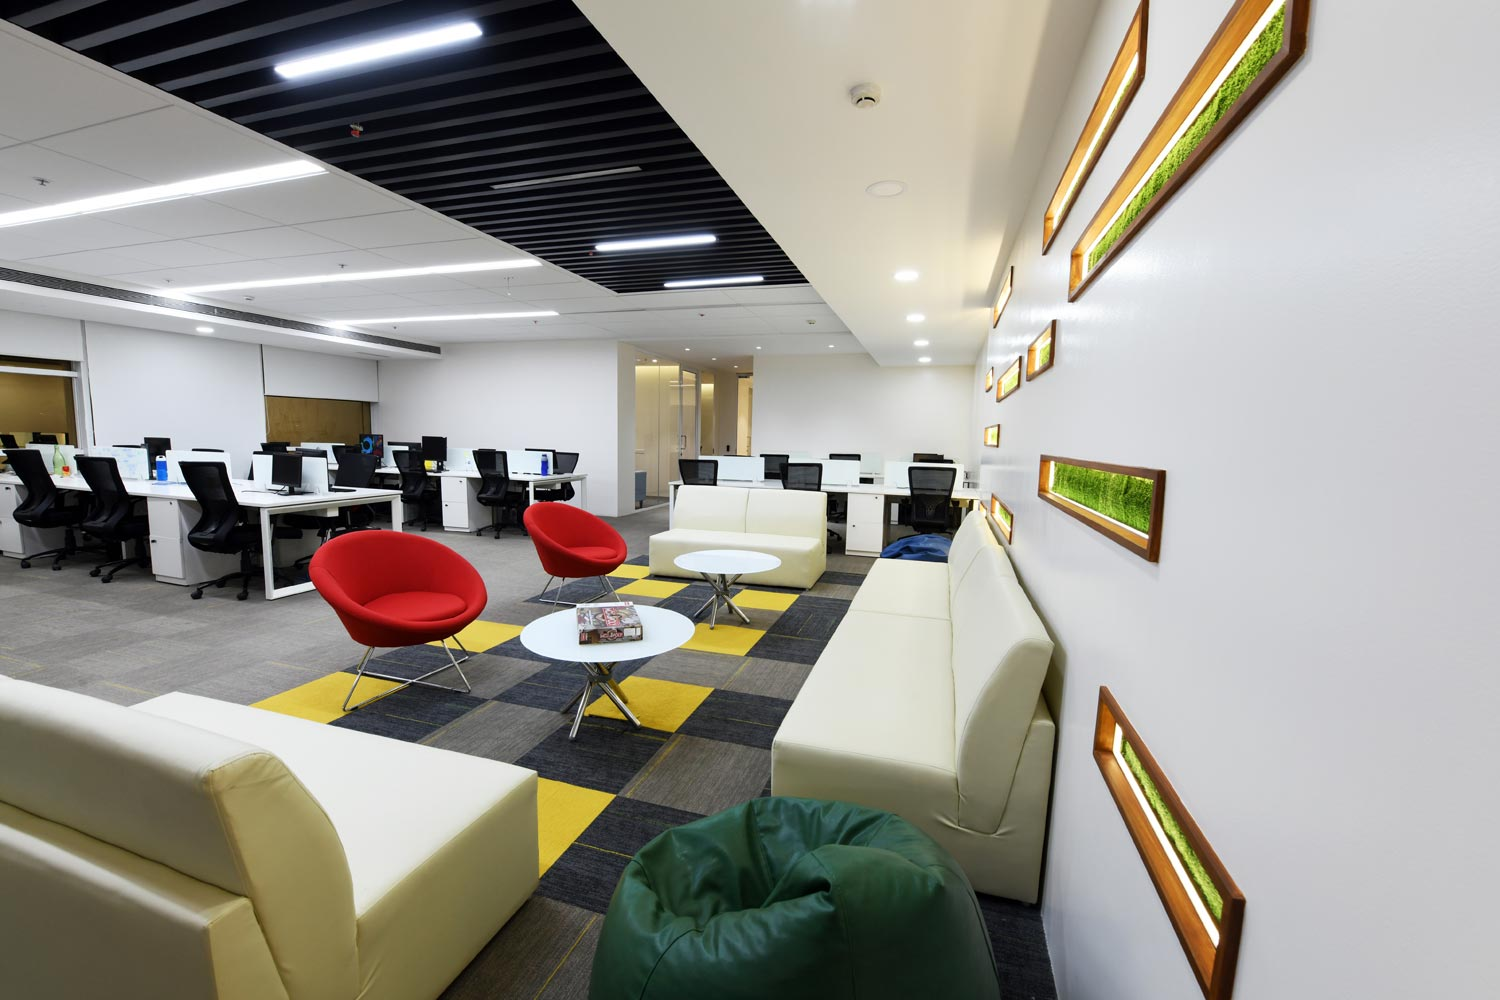 Turnkey Project Management & Interior Design Agency in Pune, Mumbai, Nashik & Ahmedabad by Studiodna